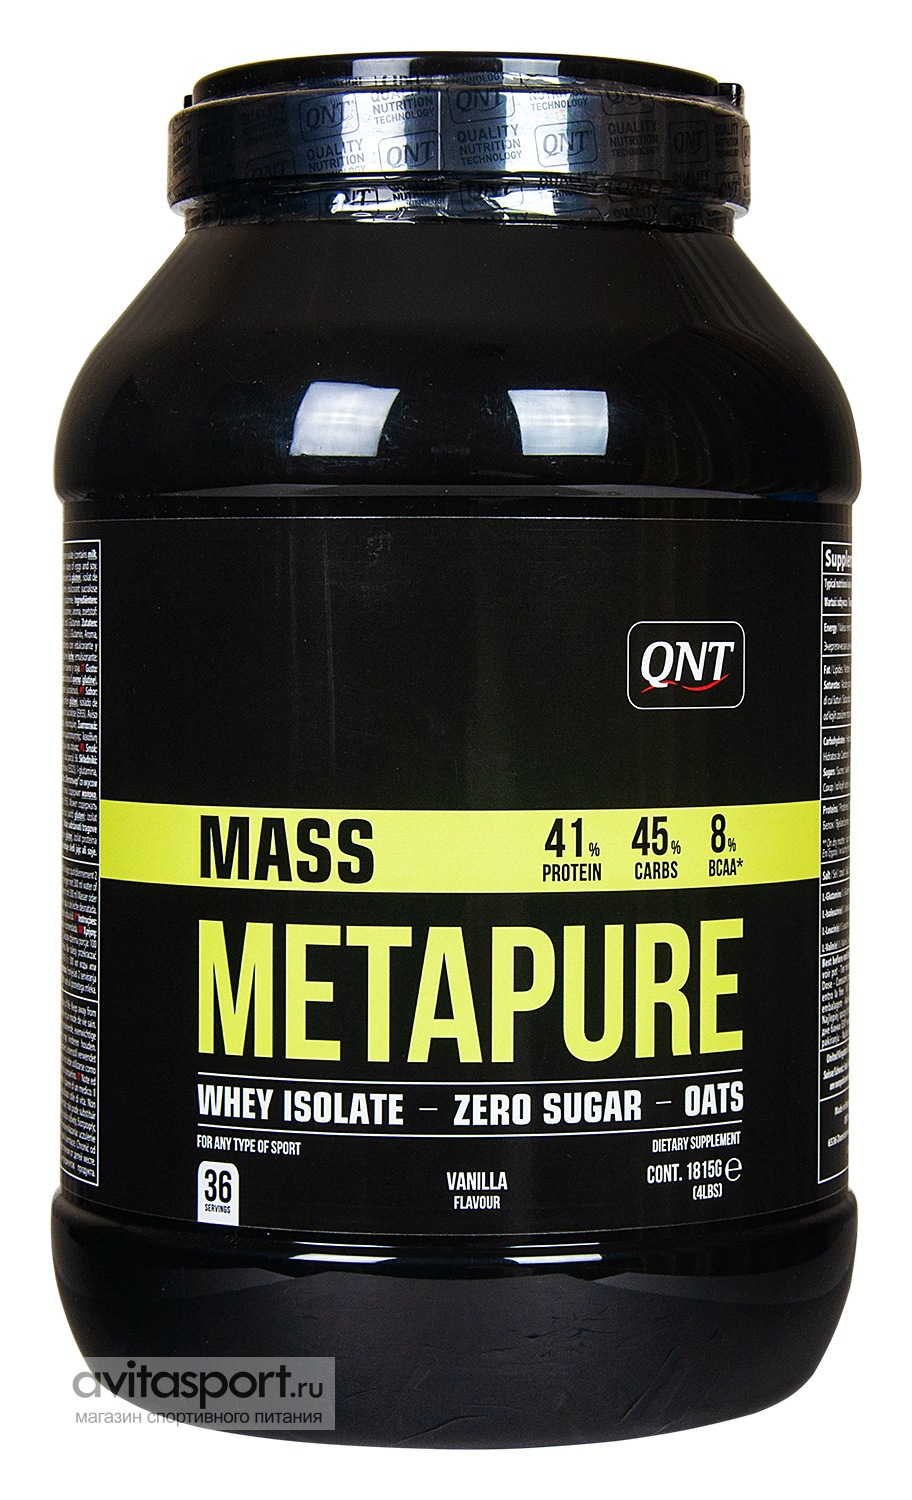 QNT Metapure Mass 1815 г